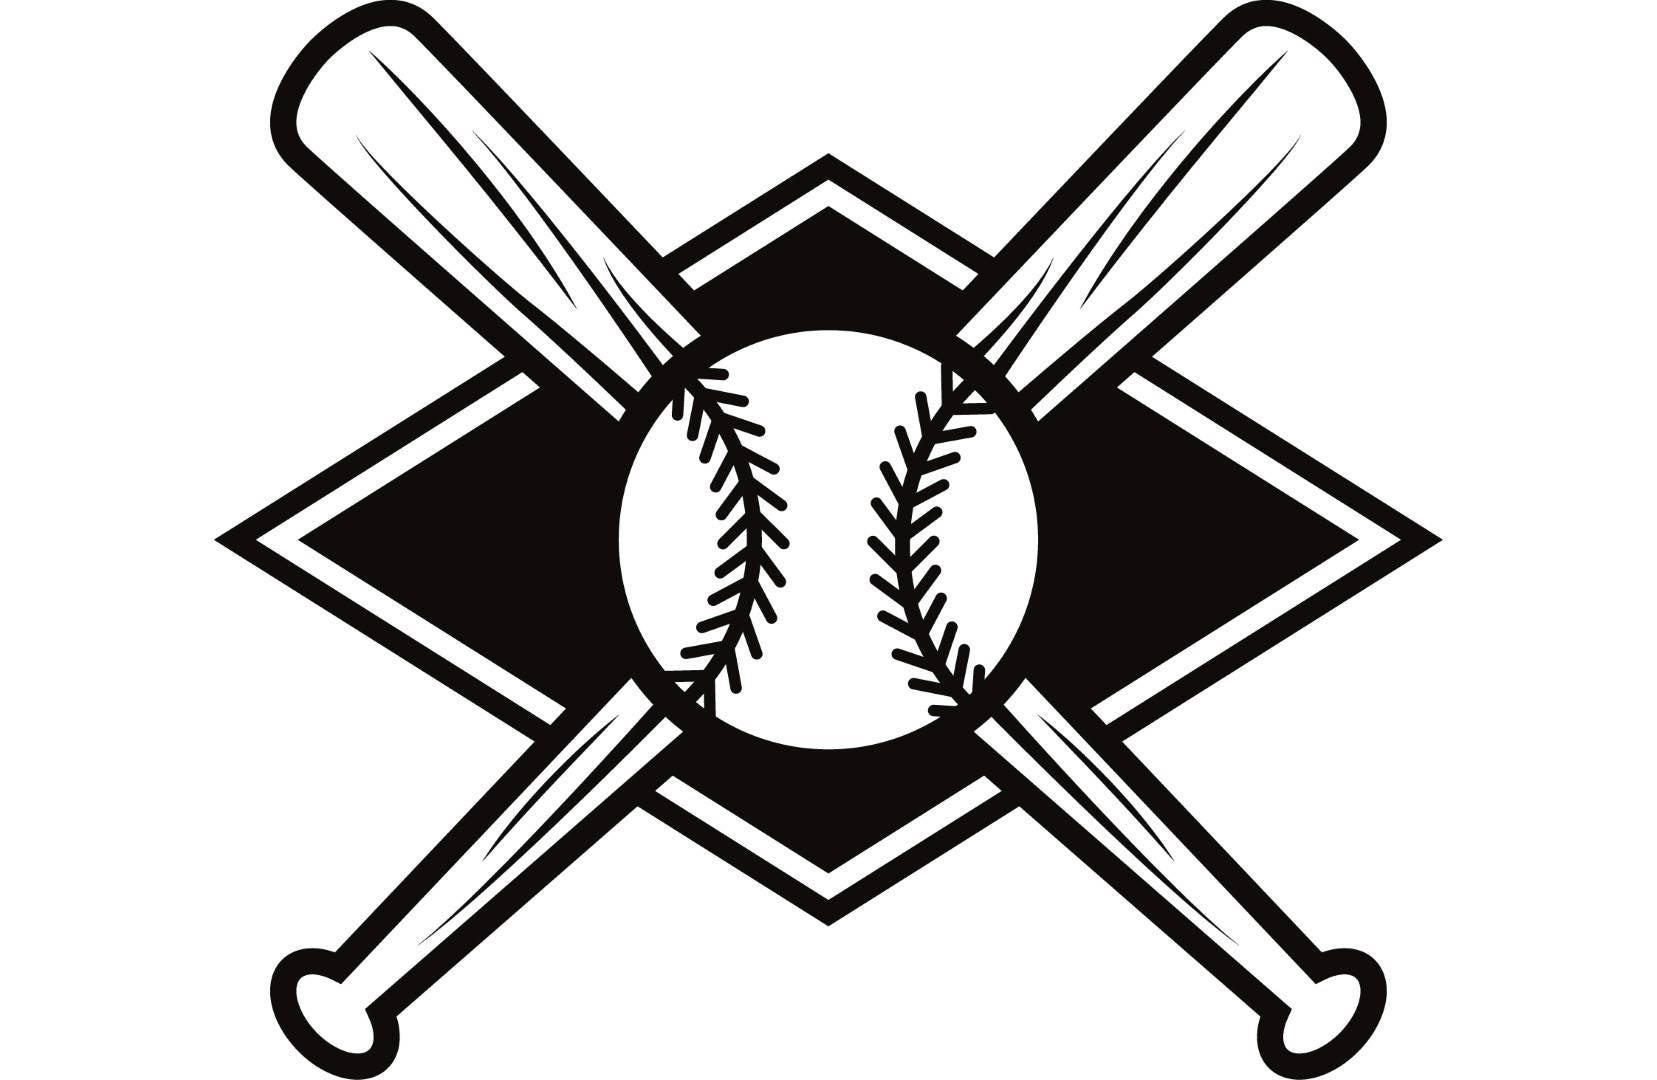 baseball logo 4 bats crossed ball diamond league equipment Crossed Bats Vector crossed softball bats clipart